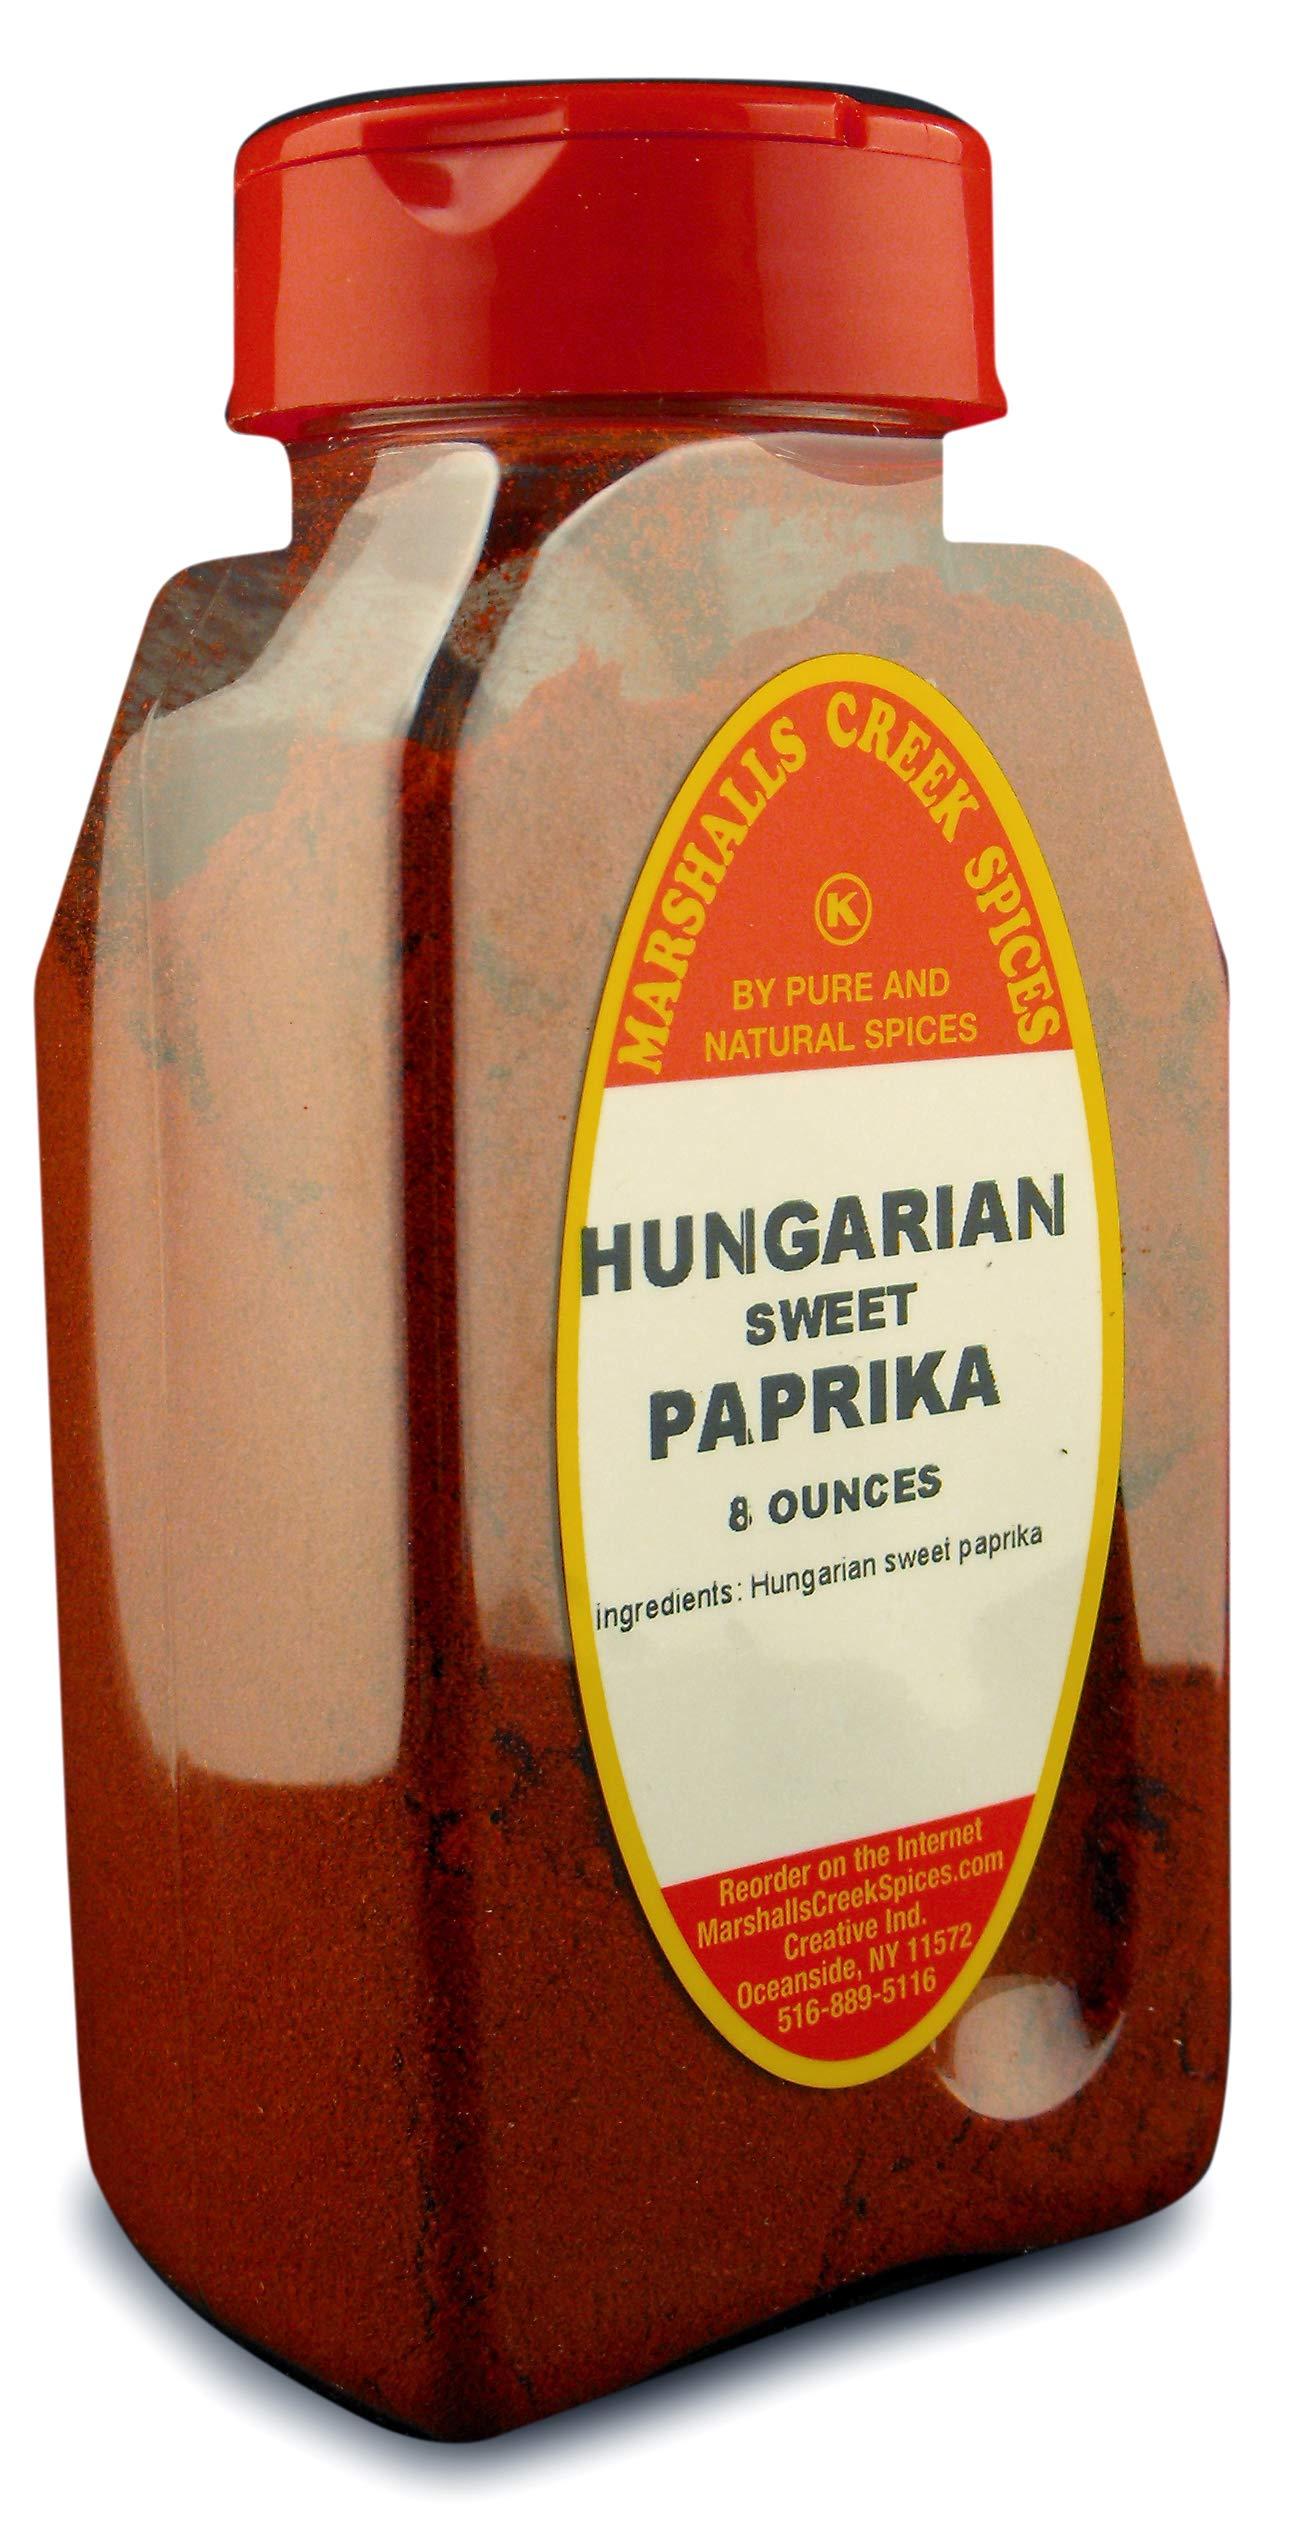 Marshalls Creek Spices (3 PACK) PAPRIKA, HUNGARIAN (sweet)